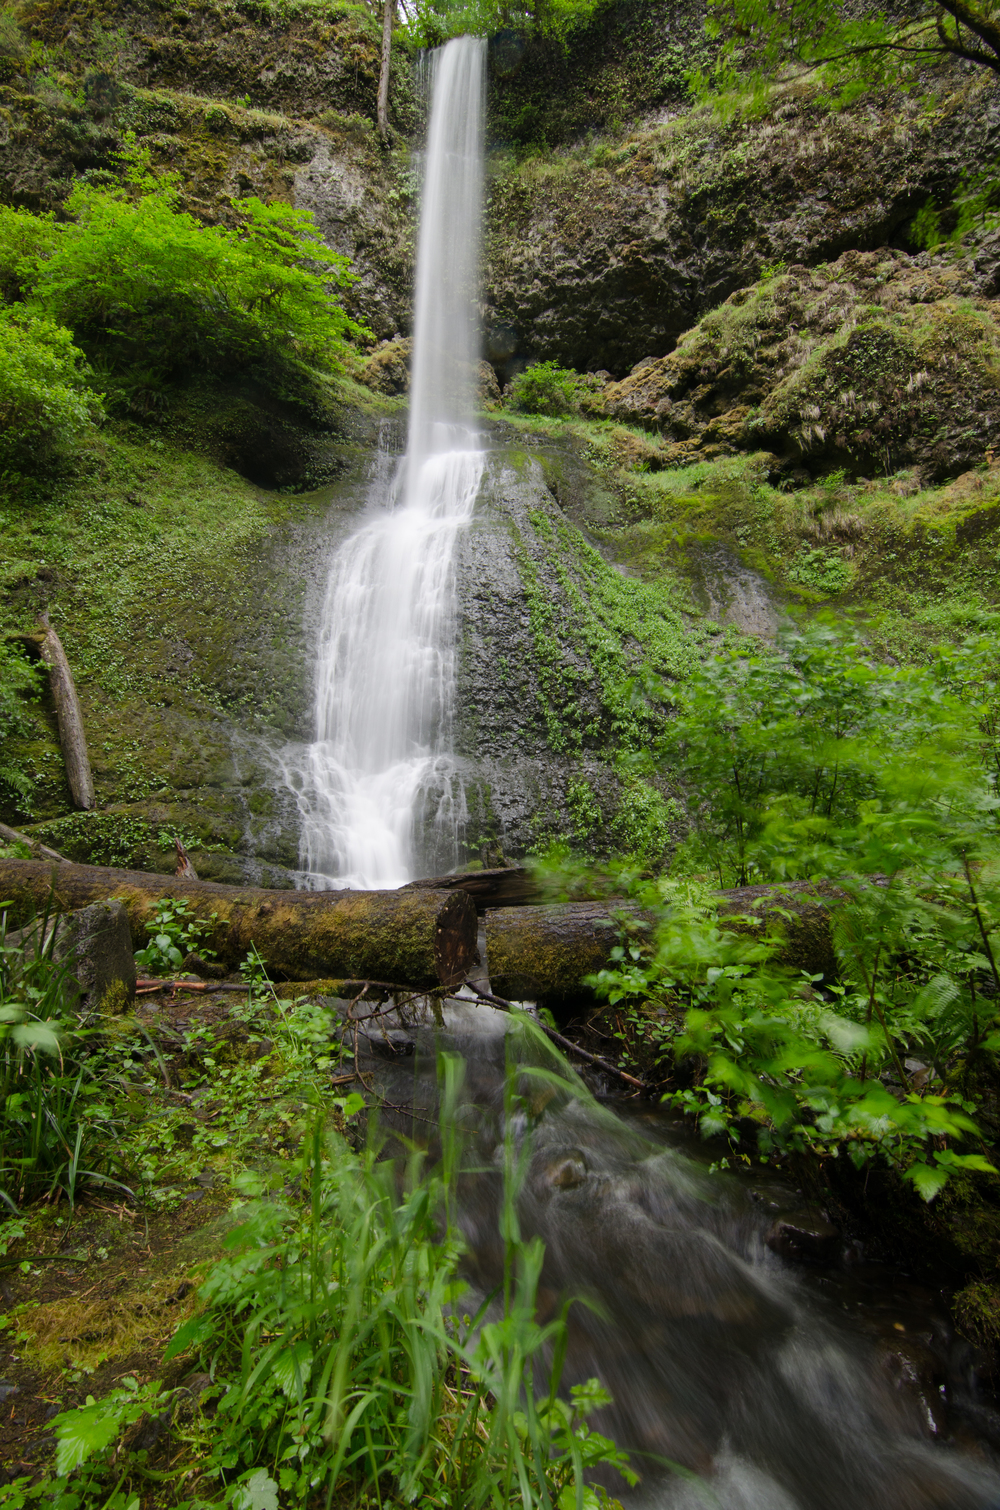 A waterfall at Silver Falls state park.